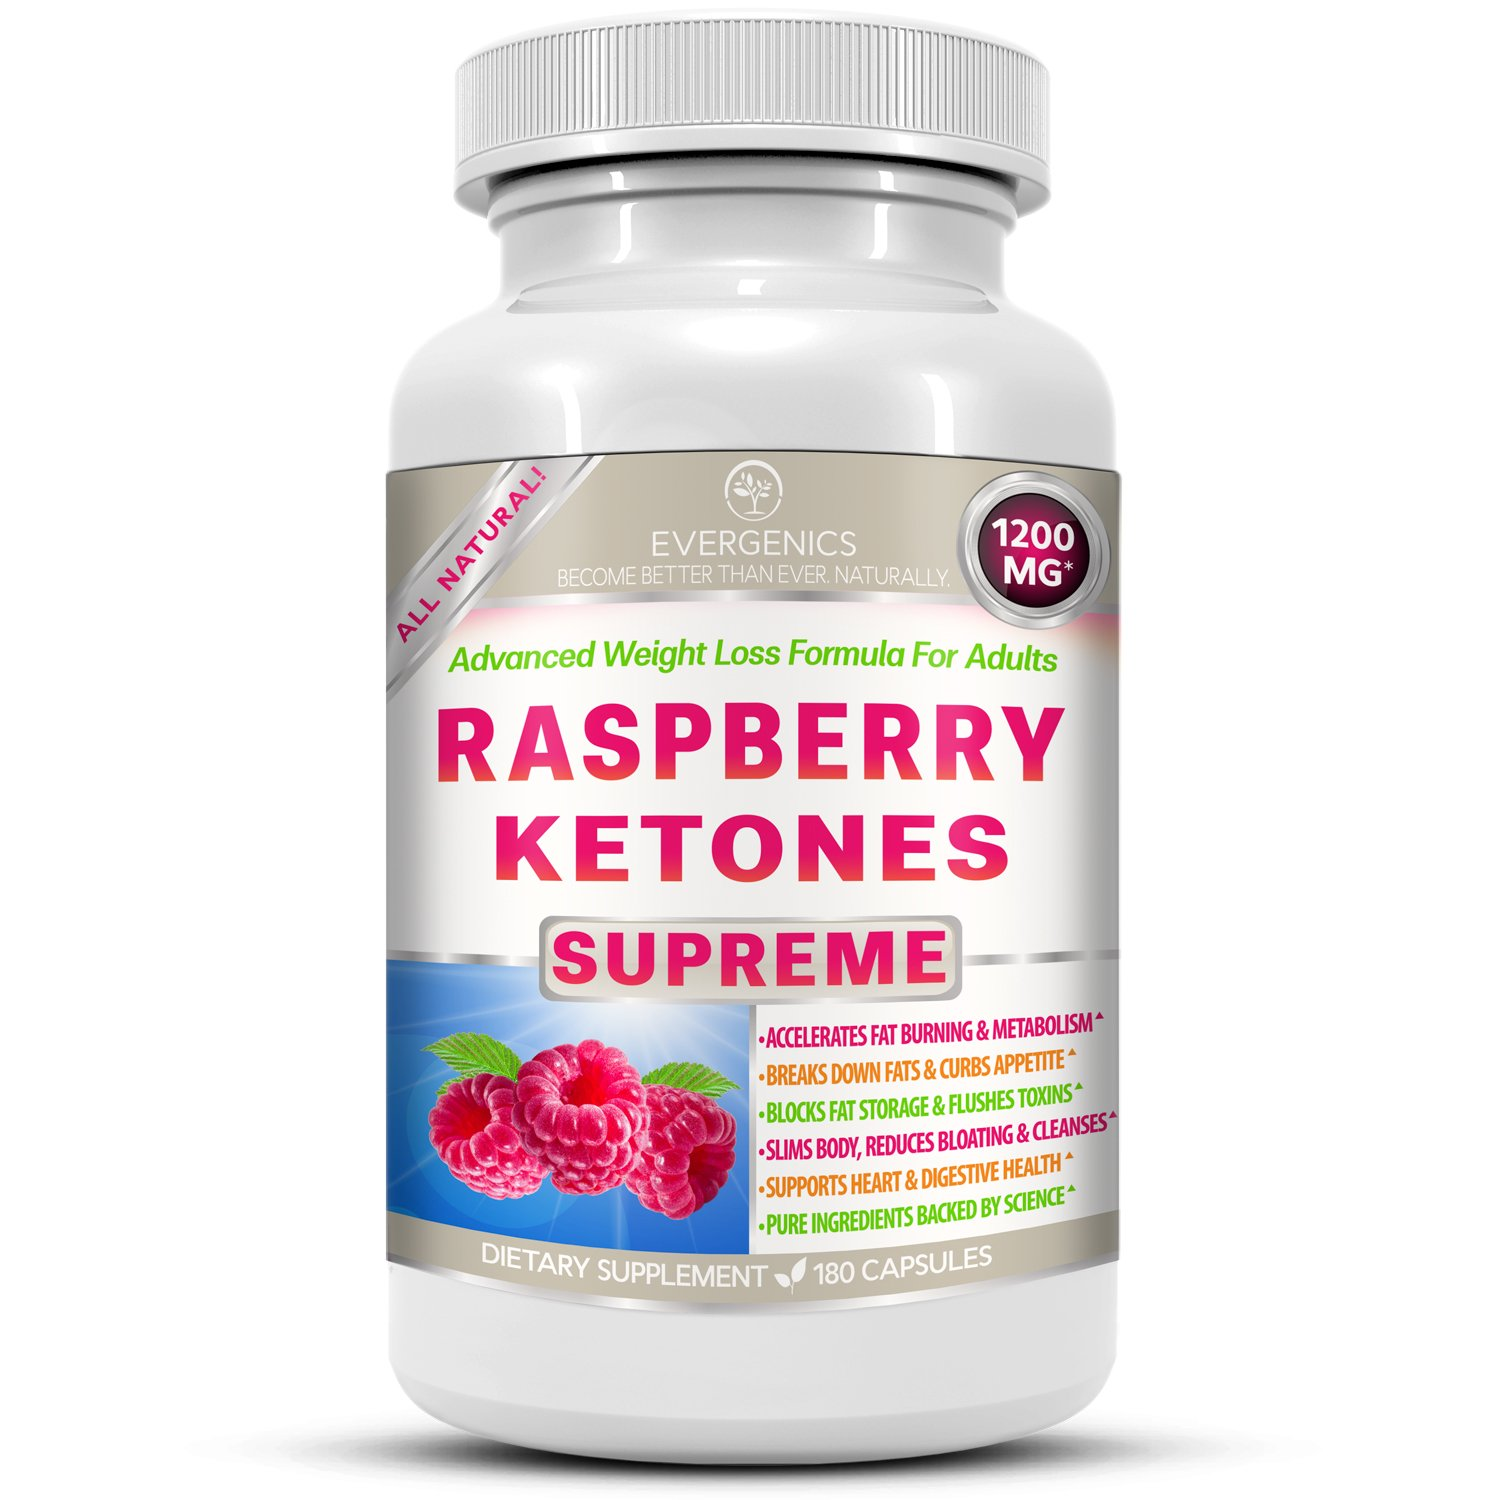 Raspberry Ketones Supreme Weight Loss & Slimming Formula for Adults. 1200mg Per Day. 180 All-Natural Capsules with Premium, Pure & Organic Ingredients. by Evergenics Health and Personal Care (Image #1)